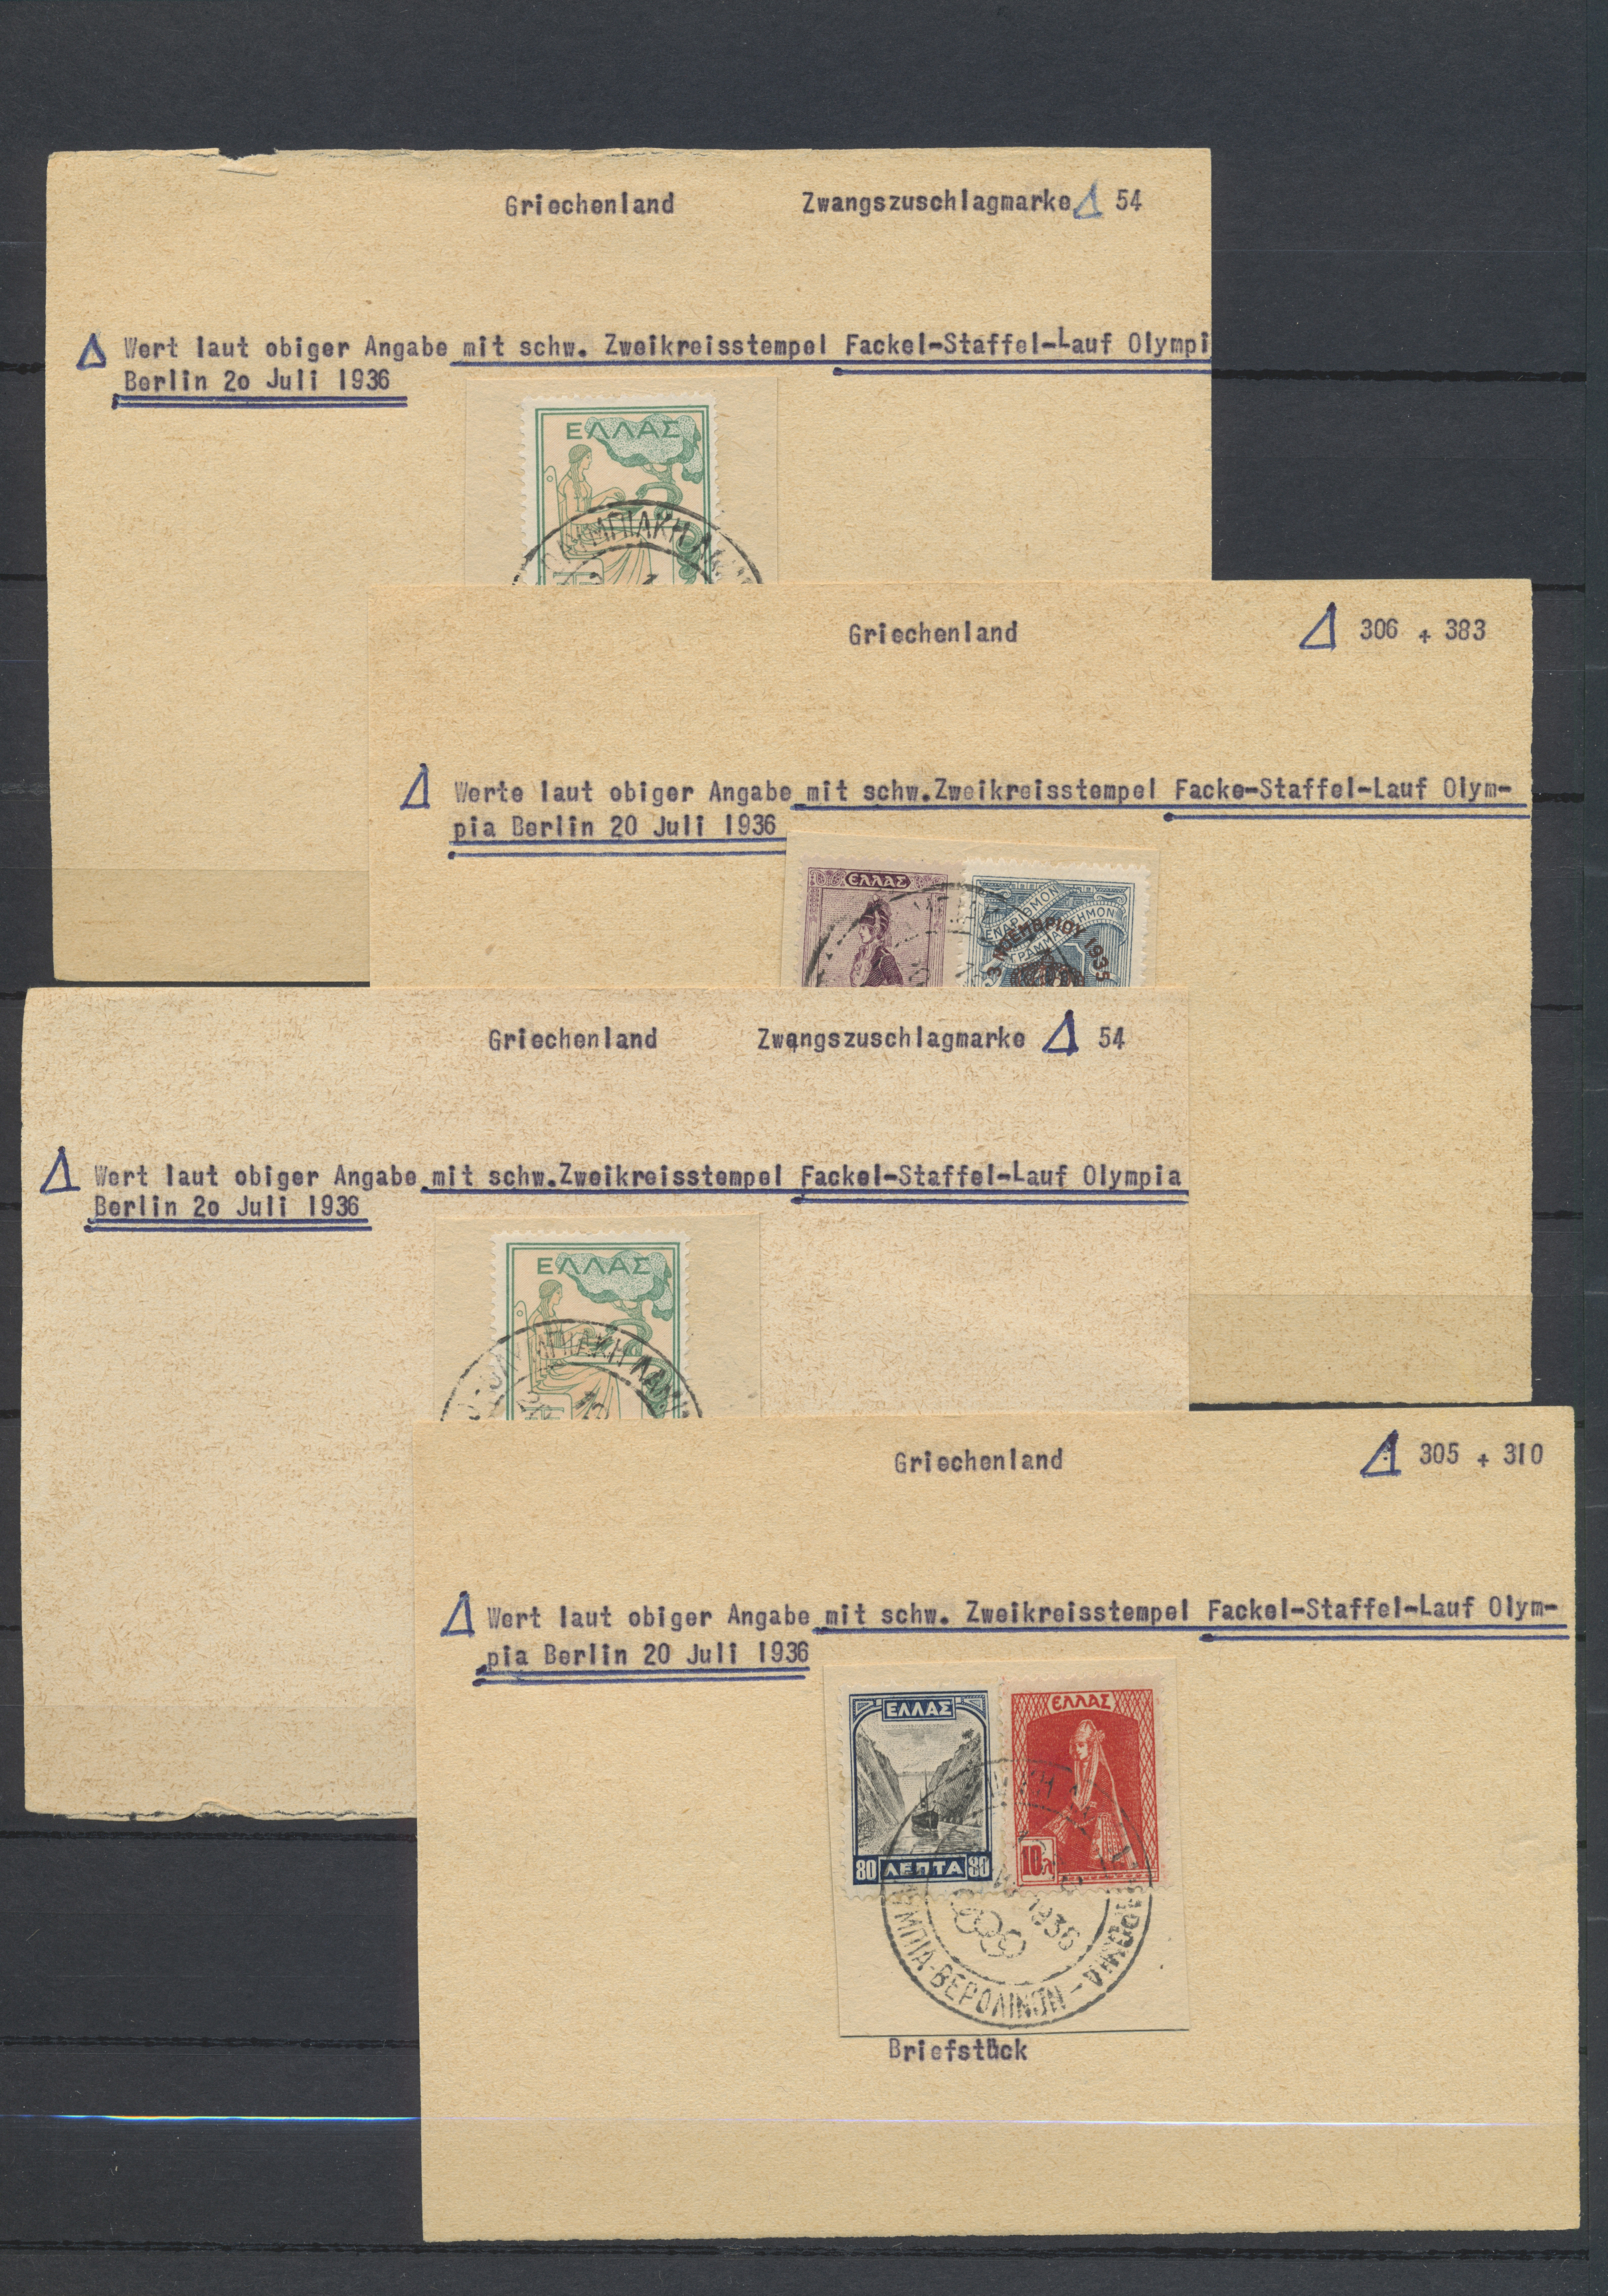 Lot 27148 - griechenland  -  Auktionshaus Christoph Gärtner GmbH & Co. KG Sale #46 Gollcetions Germany - including the suplement